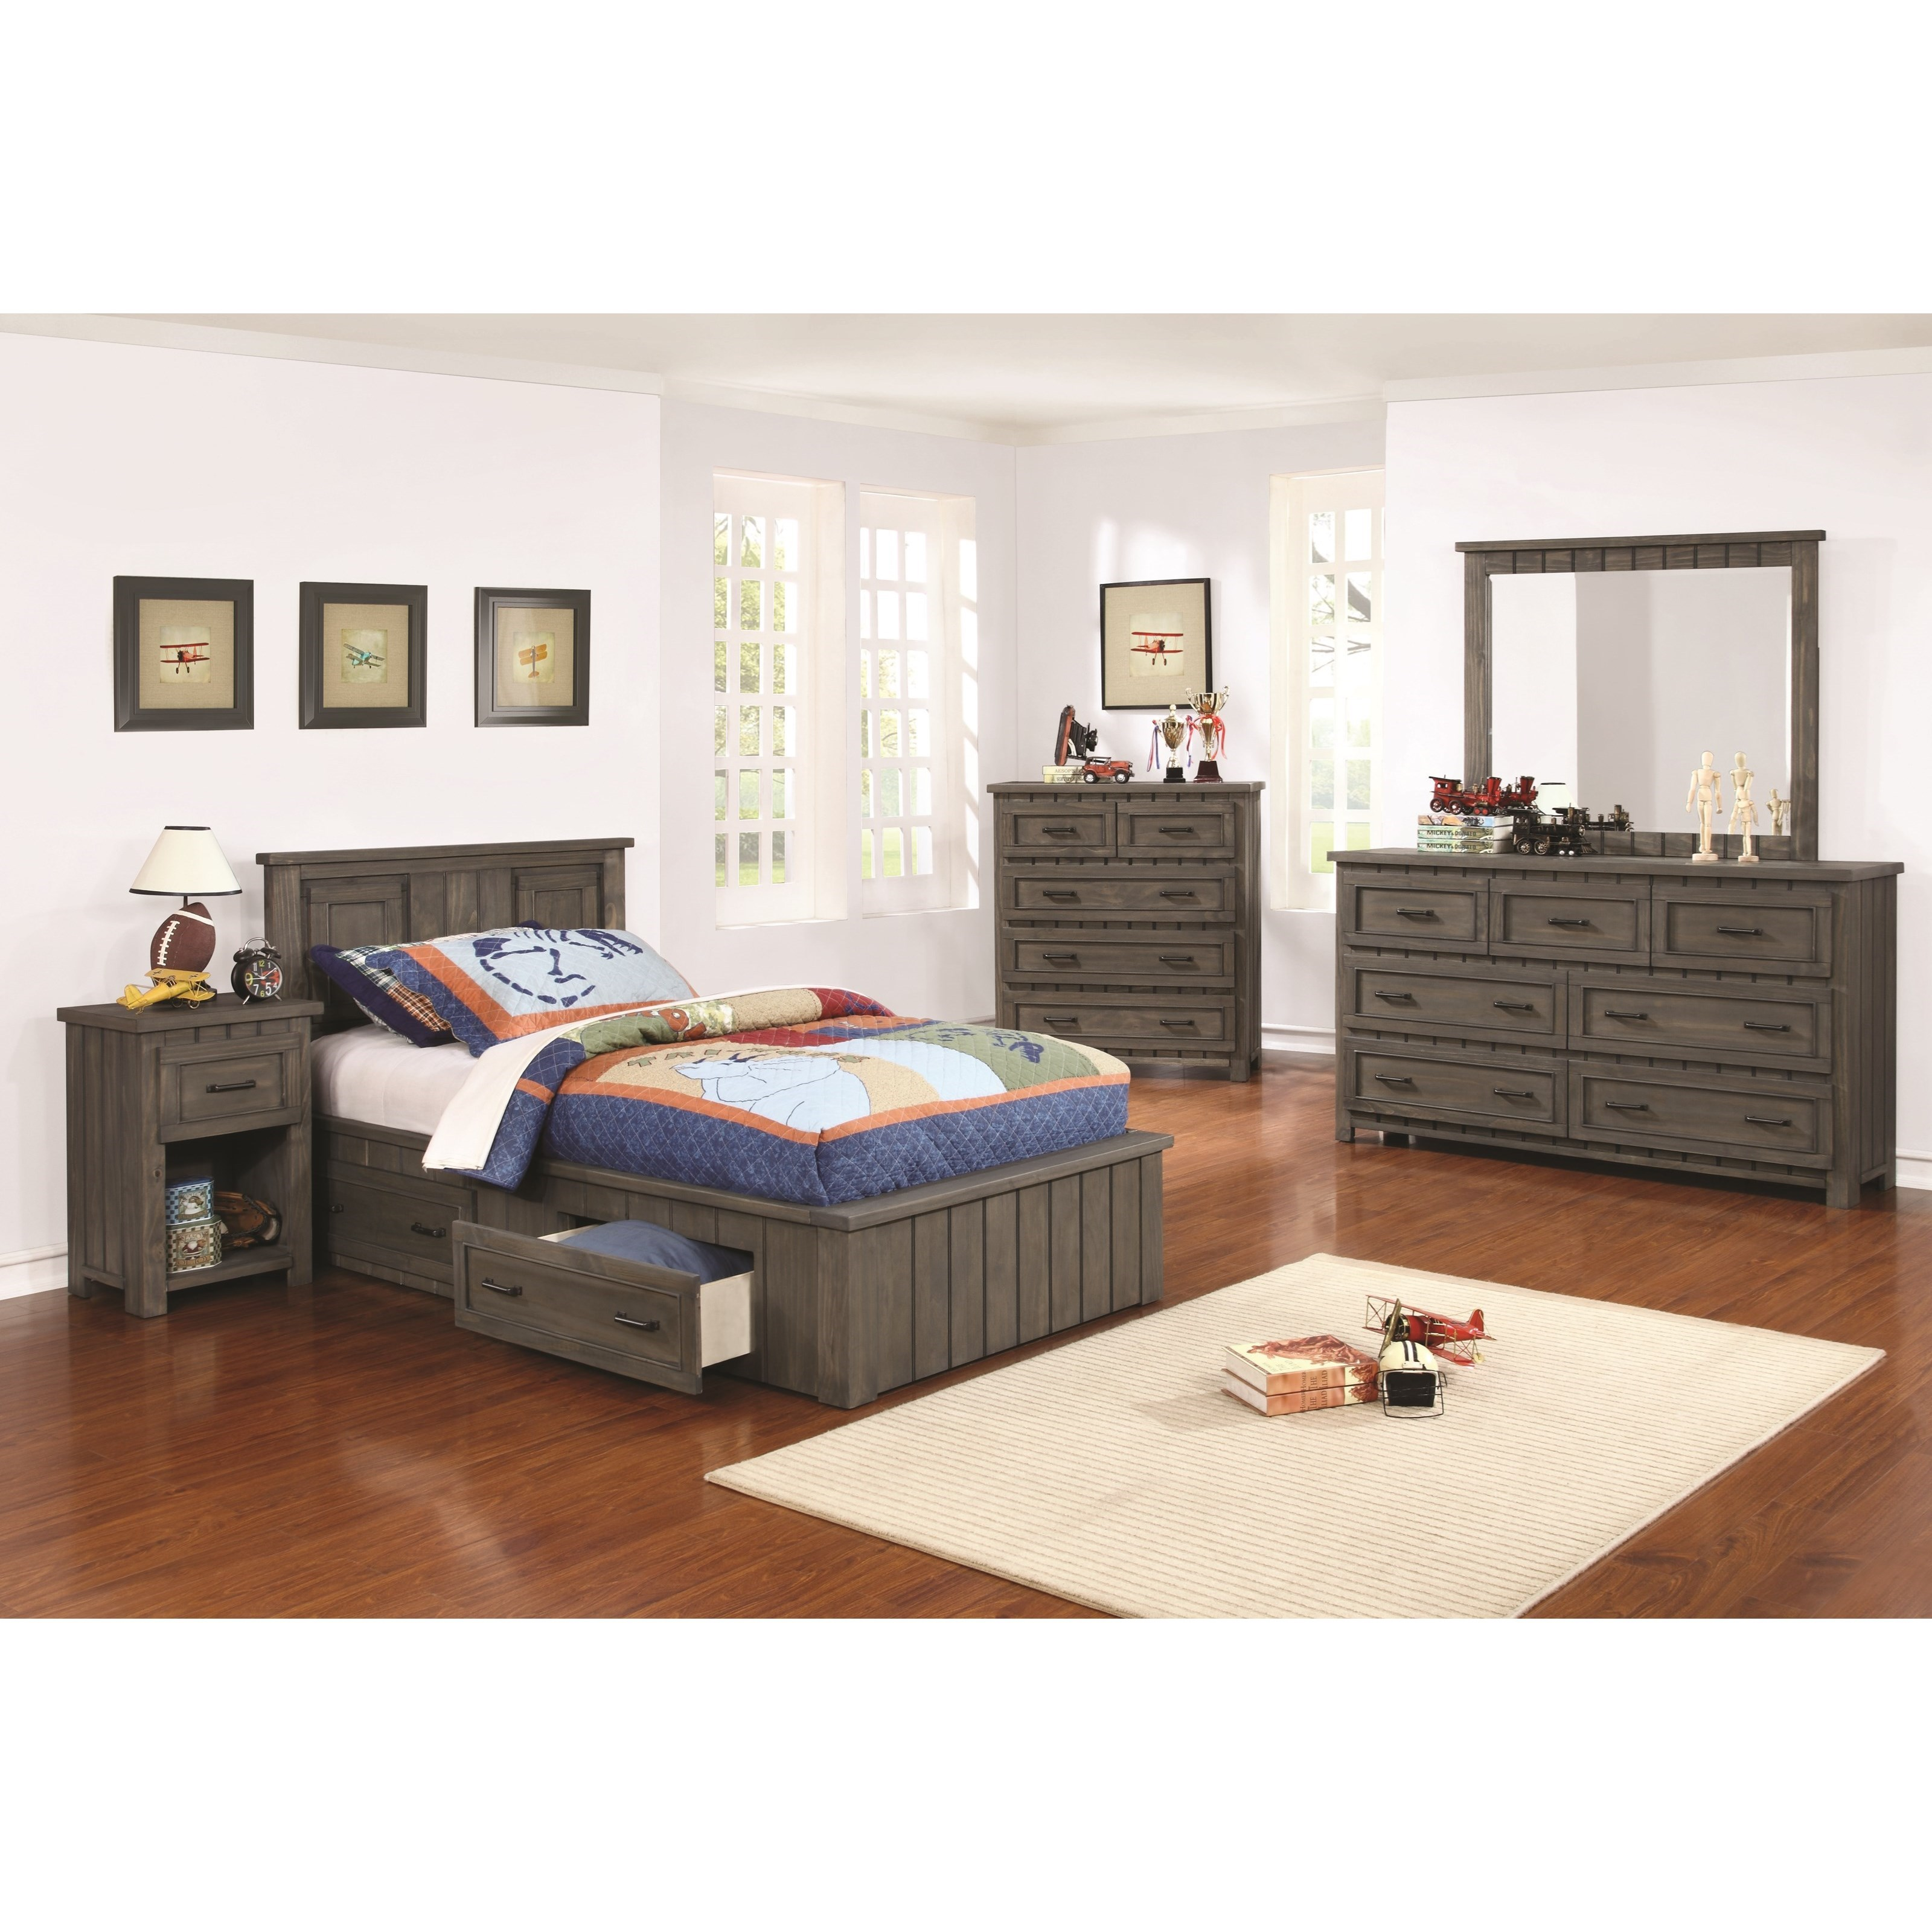 Coaster Napoleon Full Bedroom Group Value City Furniture Bedroom Groups